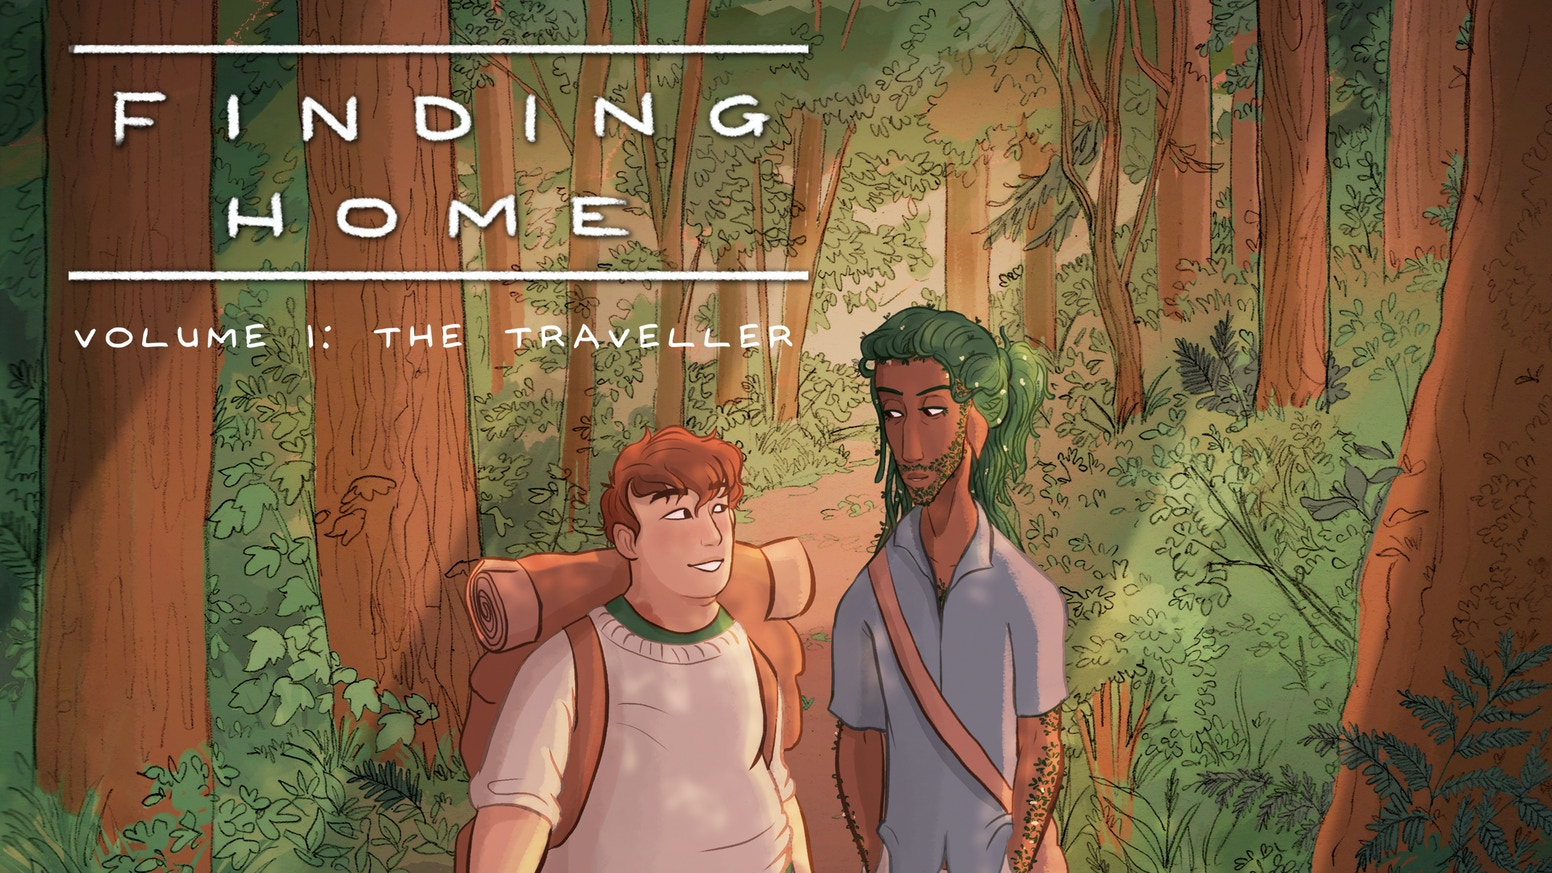 A slow-burn romance comic set in a fantasy world about anxiety, nature, and learning to let yourself grow.